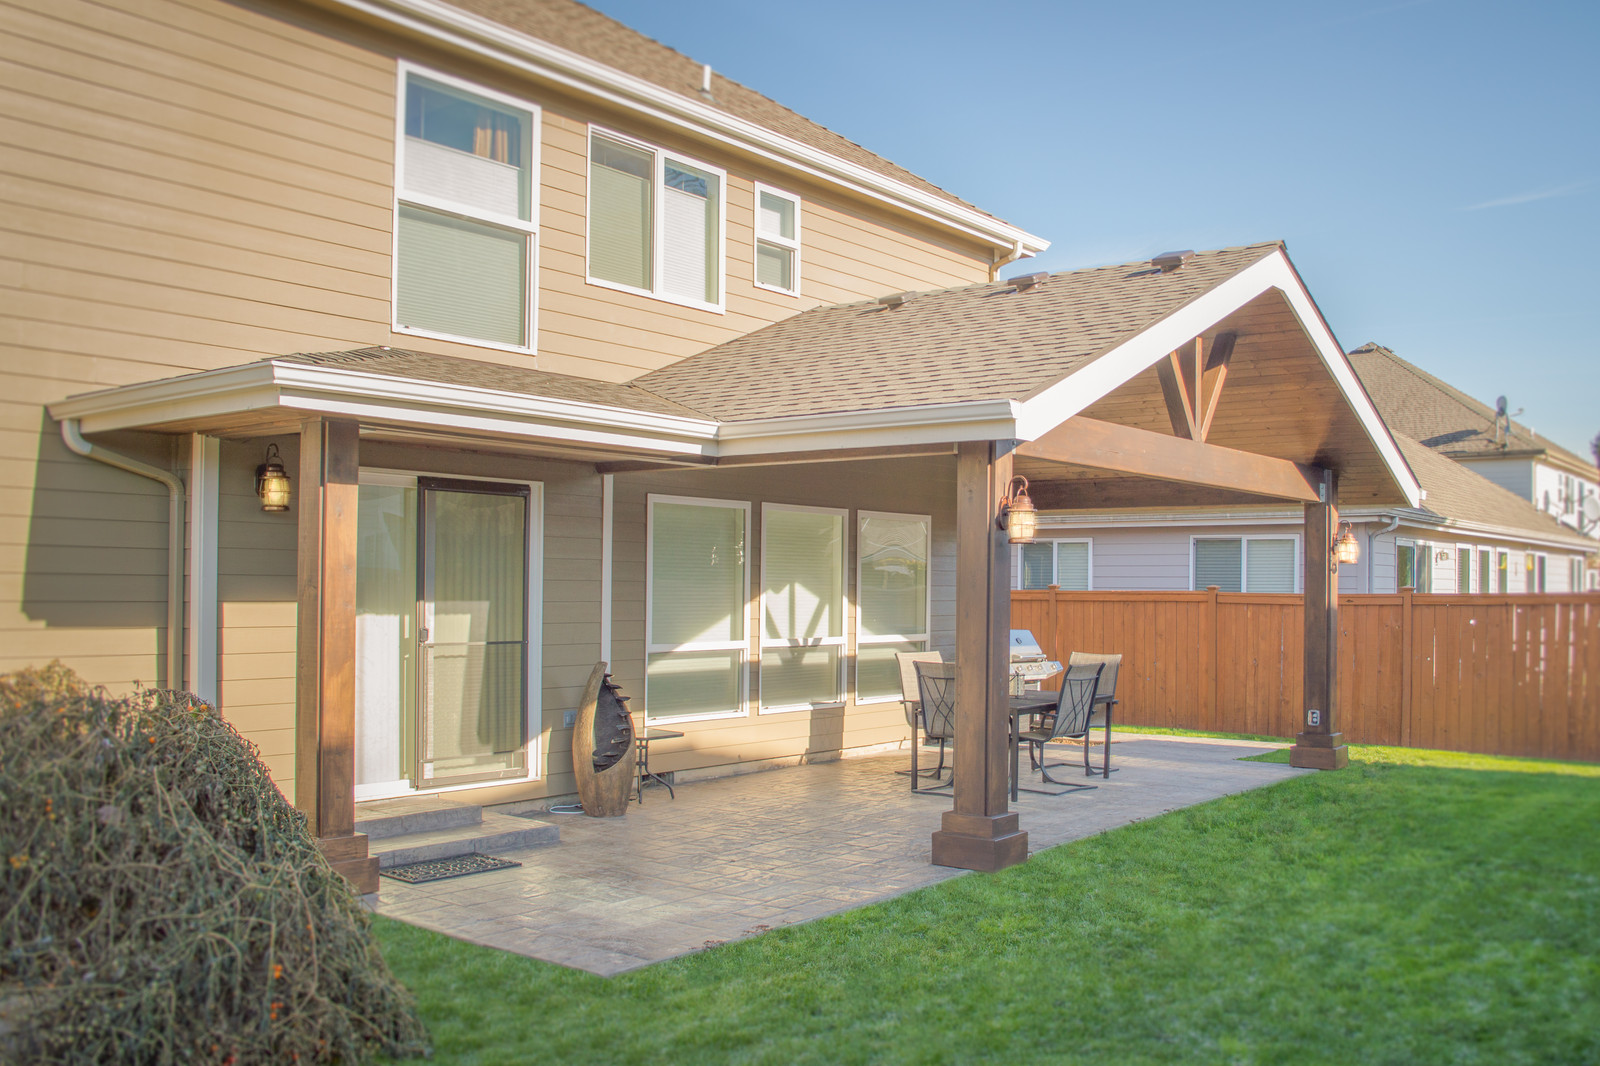 patio cover. Gable Patio Cover With Hipped Extension Patio Cover A